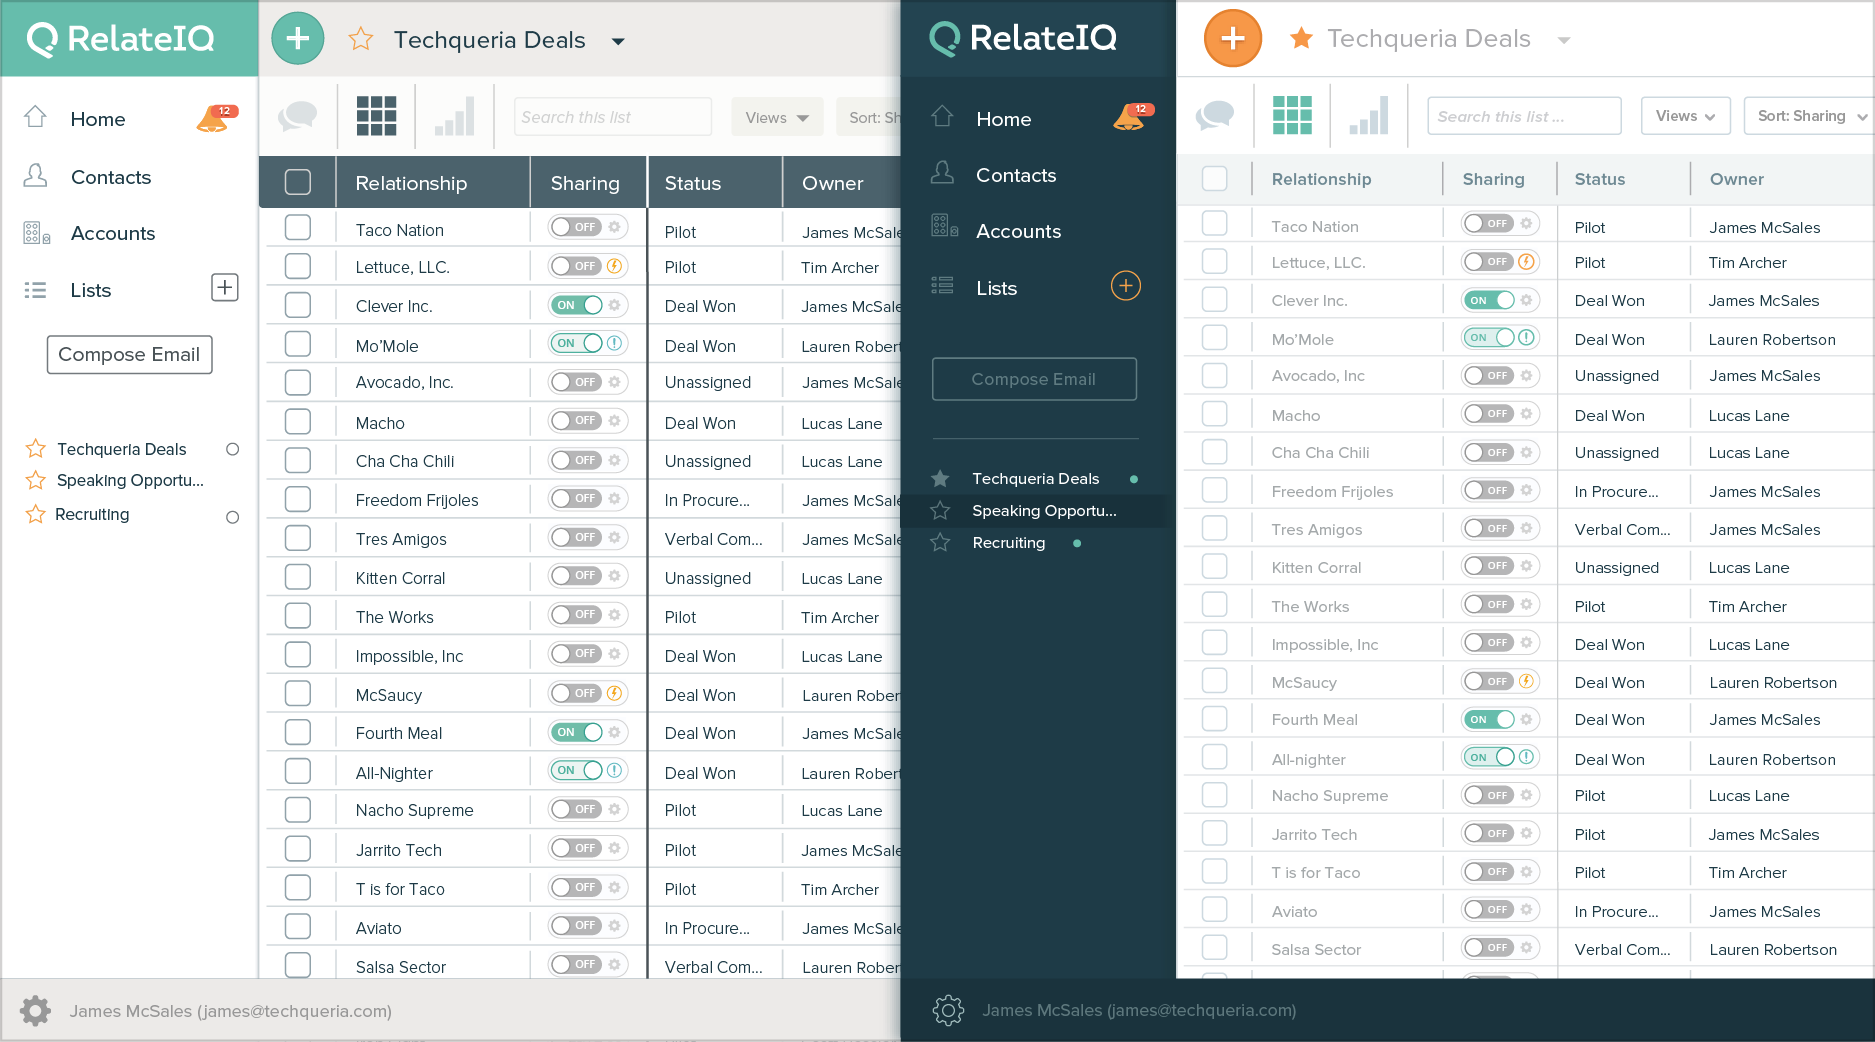 RelateIQ: Contact Management, Reports, Opportunity Management